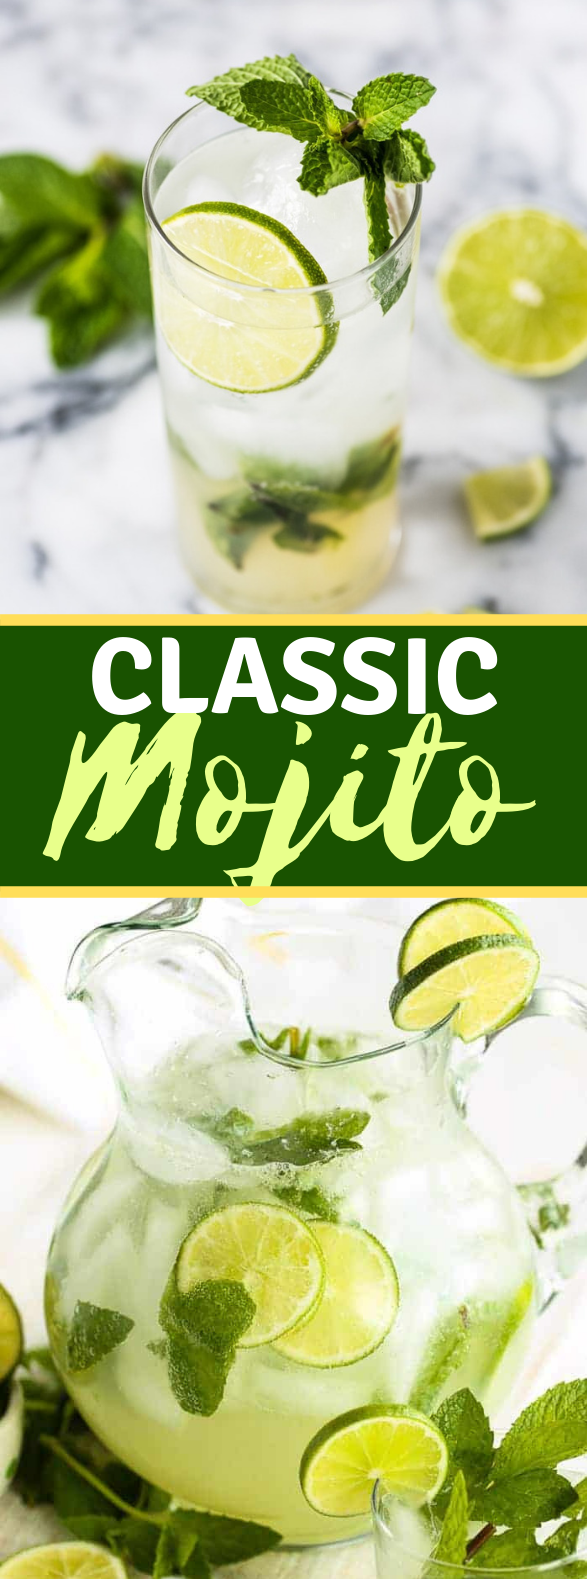 Classic Mojito Recipe #drinks #rum